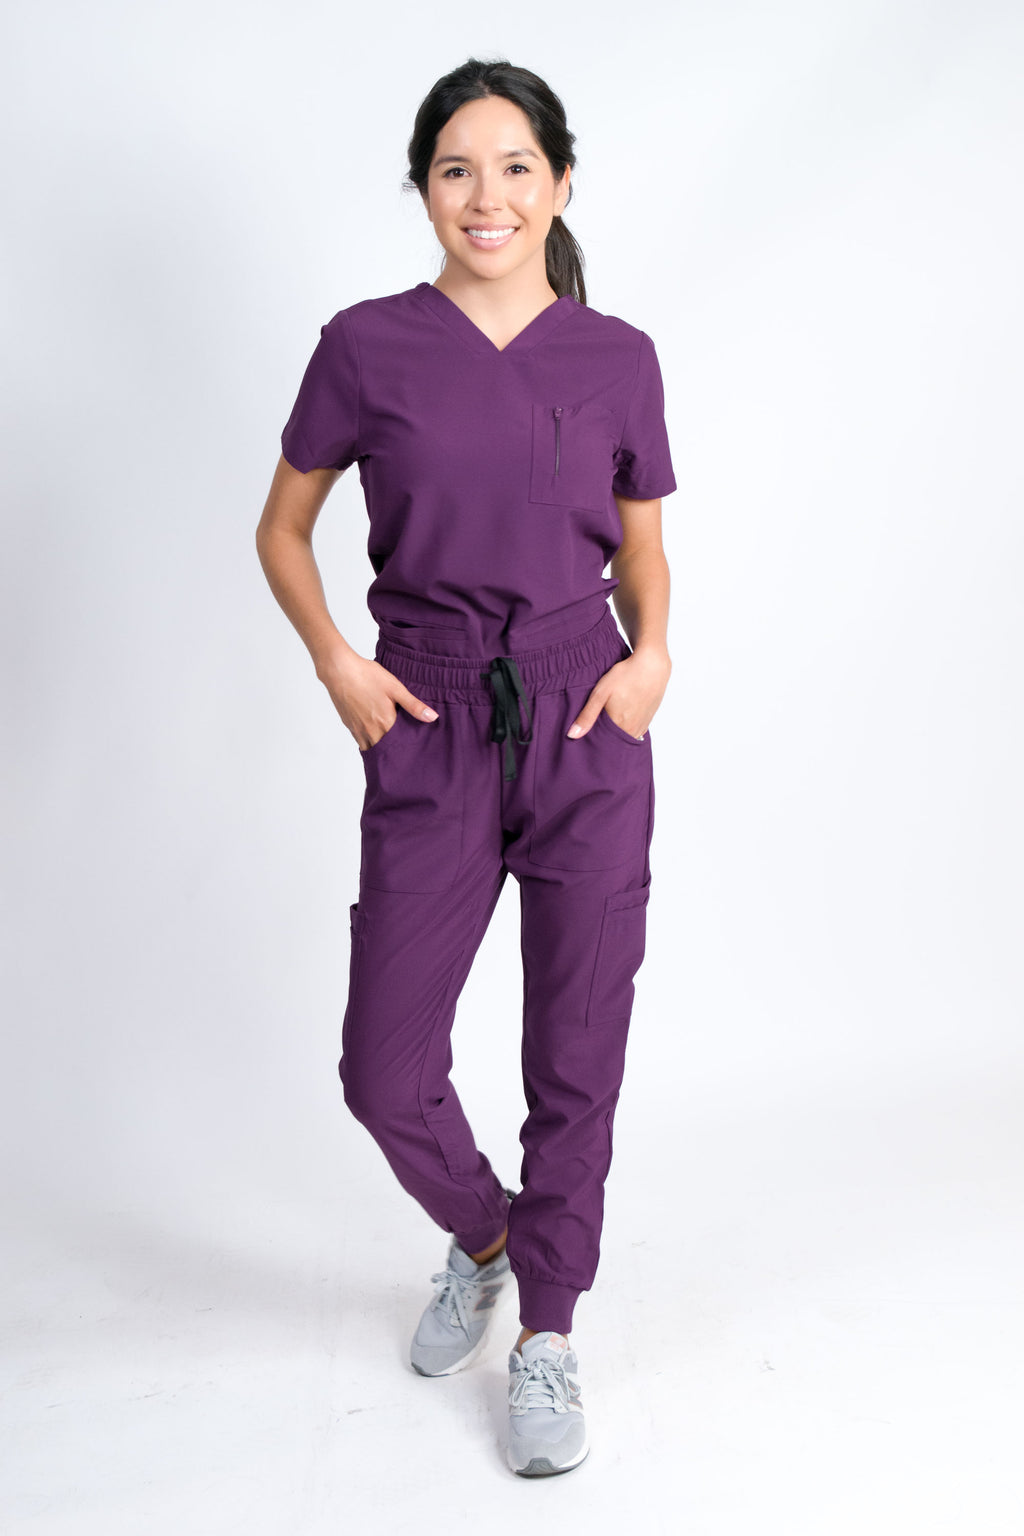 Fleur | Women's Mitered Neck Zip Chest Pocket Top Knit Rib Cuffs Jogger Pants Set | Eggplant